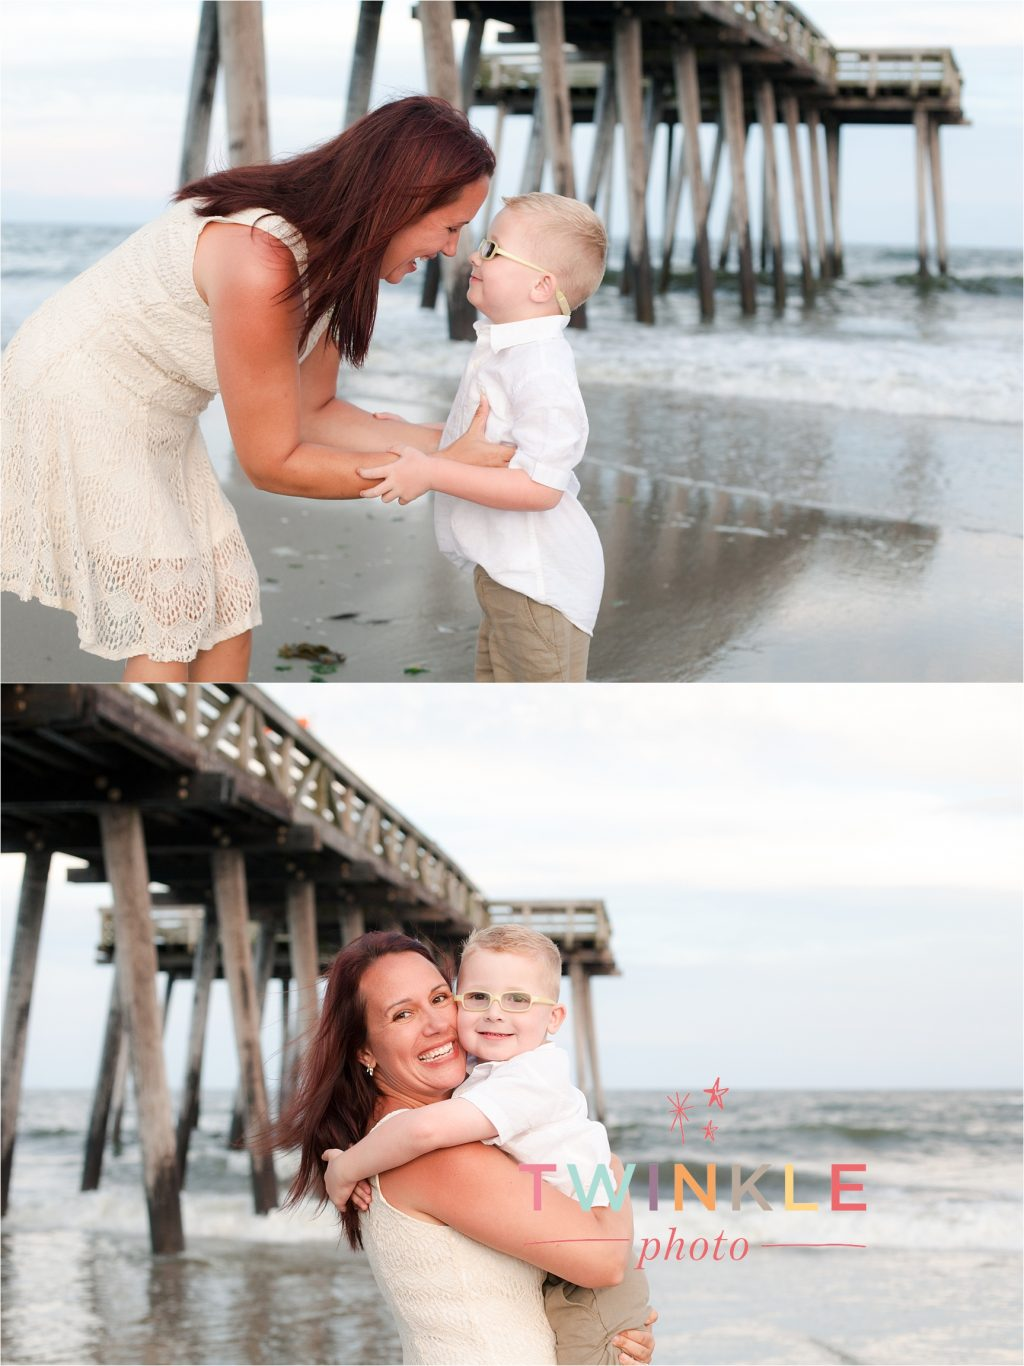 OCNJ Ocean City NJ New Jersey Beach Family Photography Photographer Twinkle Photo-17